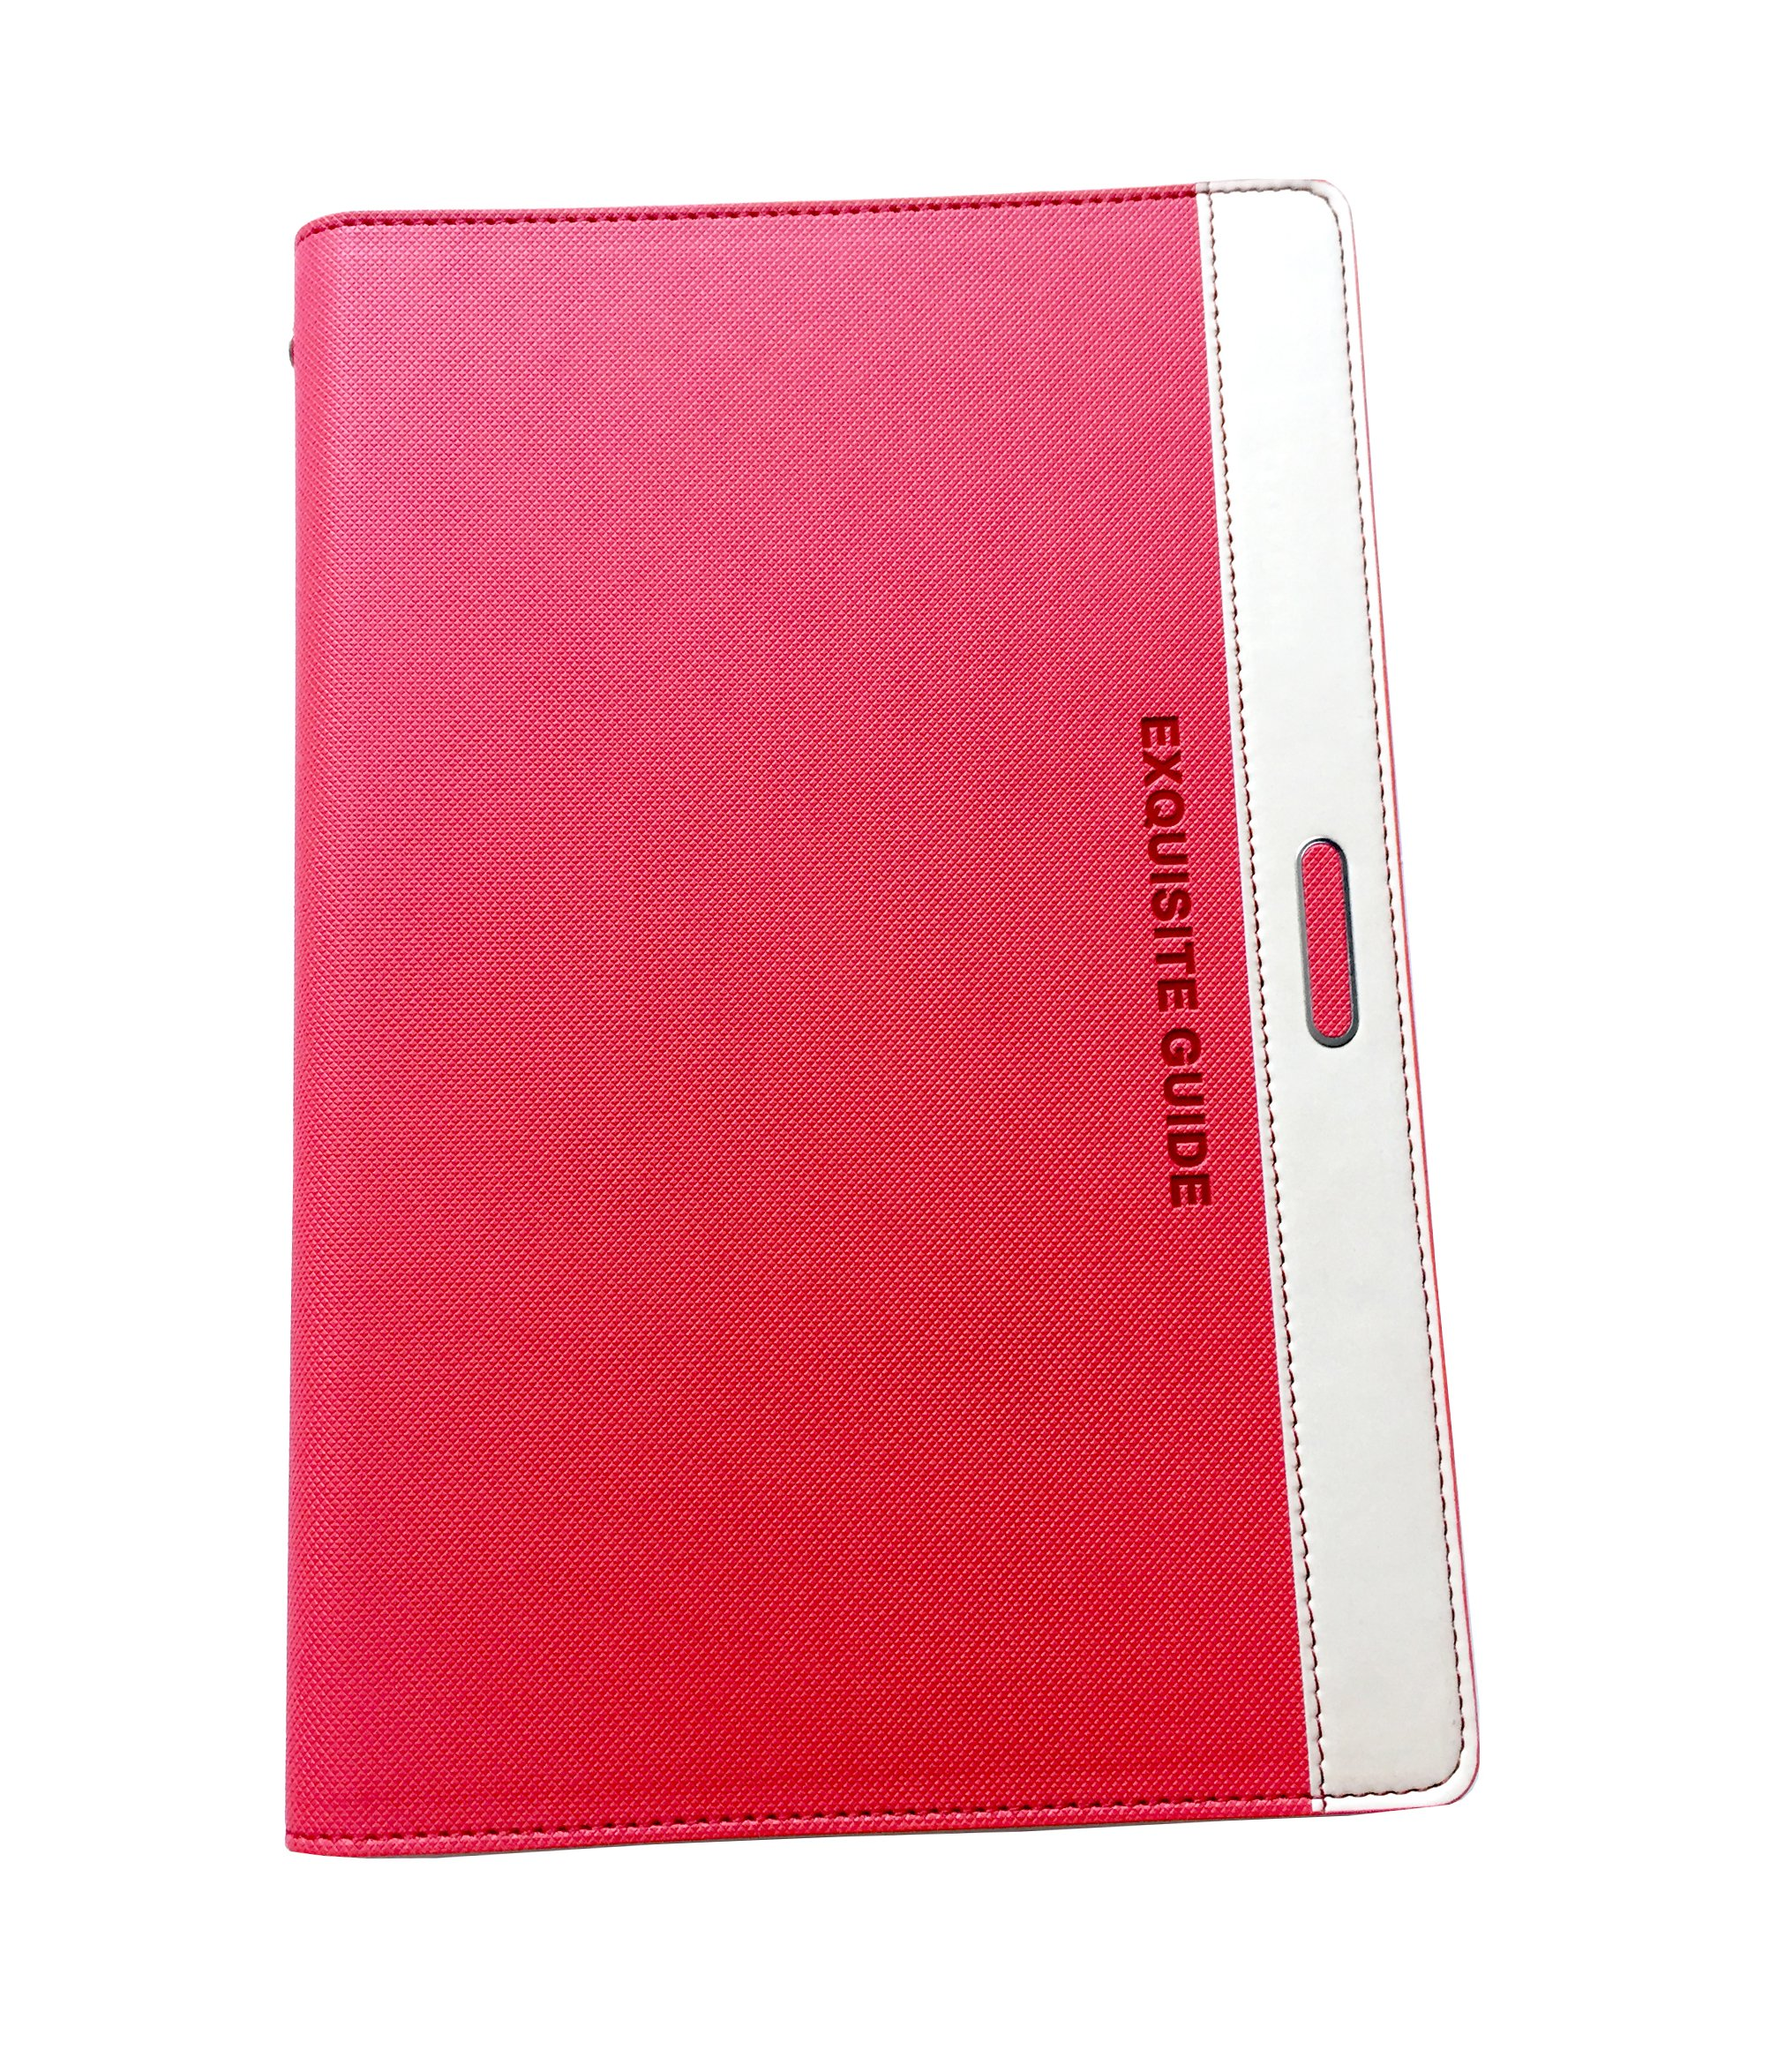 ExquisiteGuide Notebook, Leather Journal, A5 PU Leather Business Notebook, Bullet Journal, Writing Notebook Diary with Card Holder & Pen Loop & Refillable Loose Leaf Journal(Red)